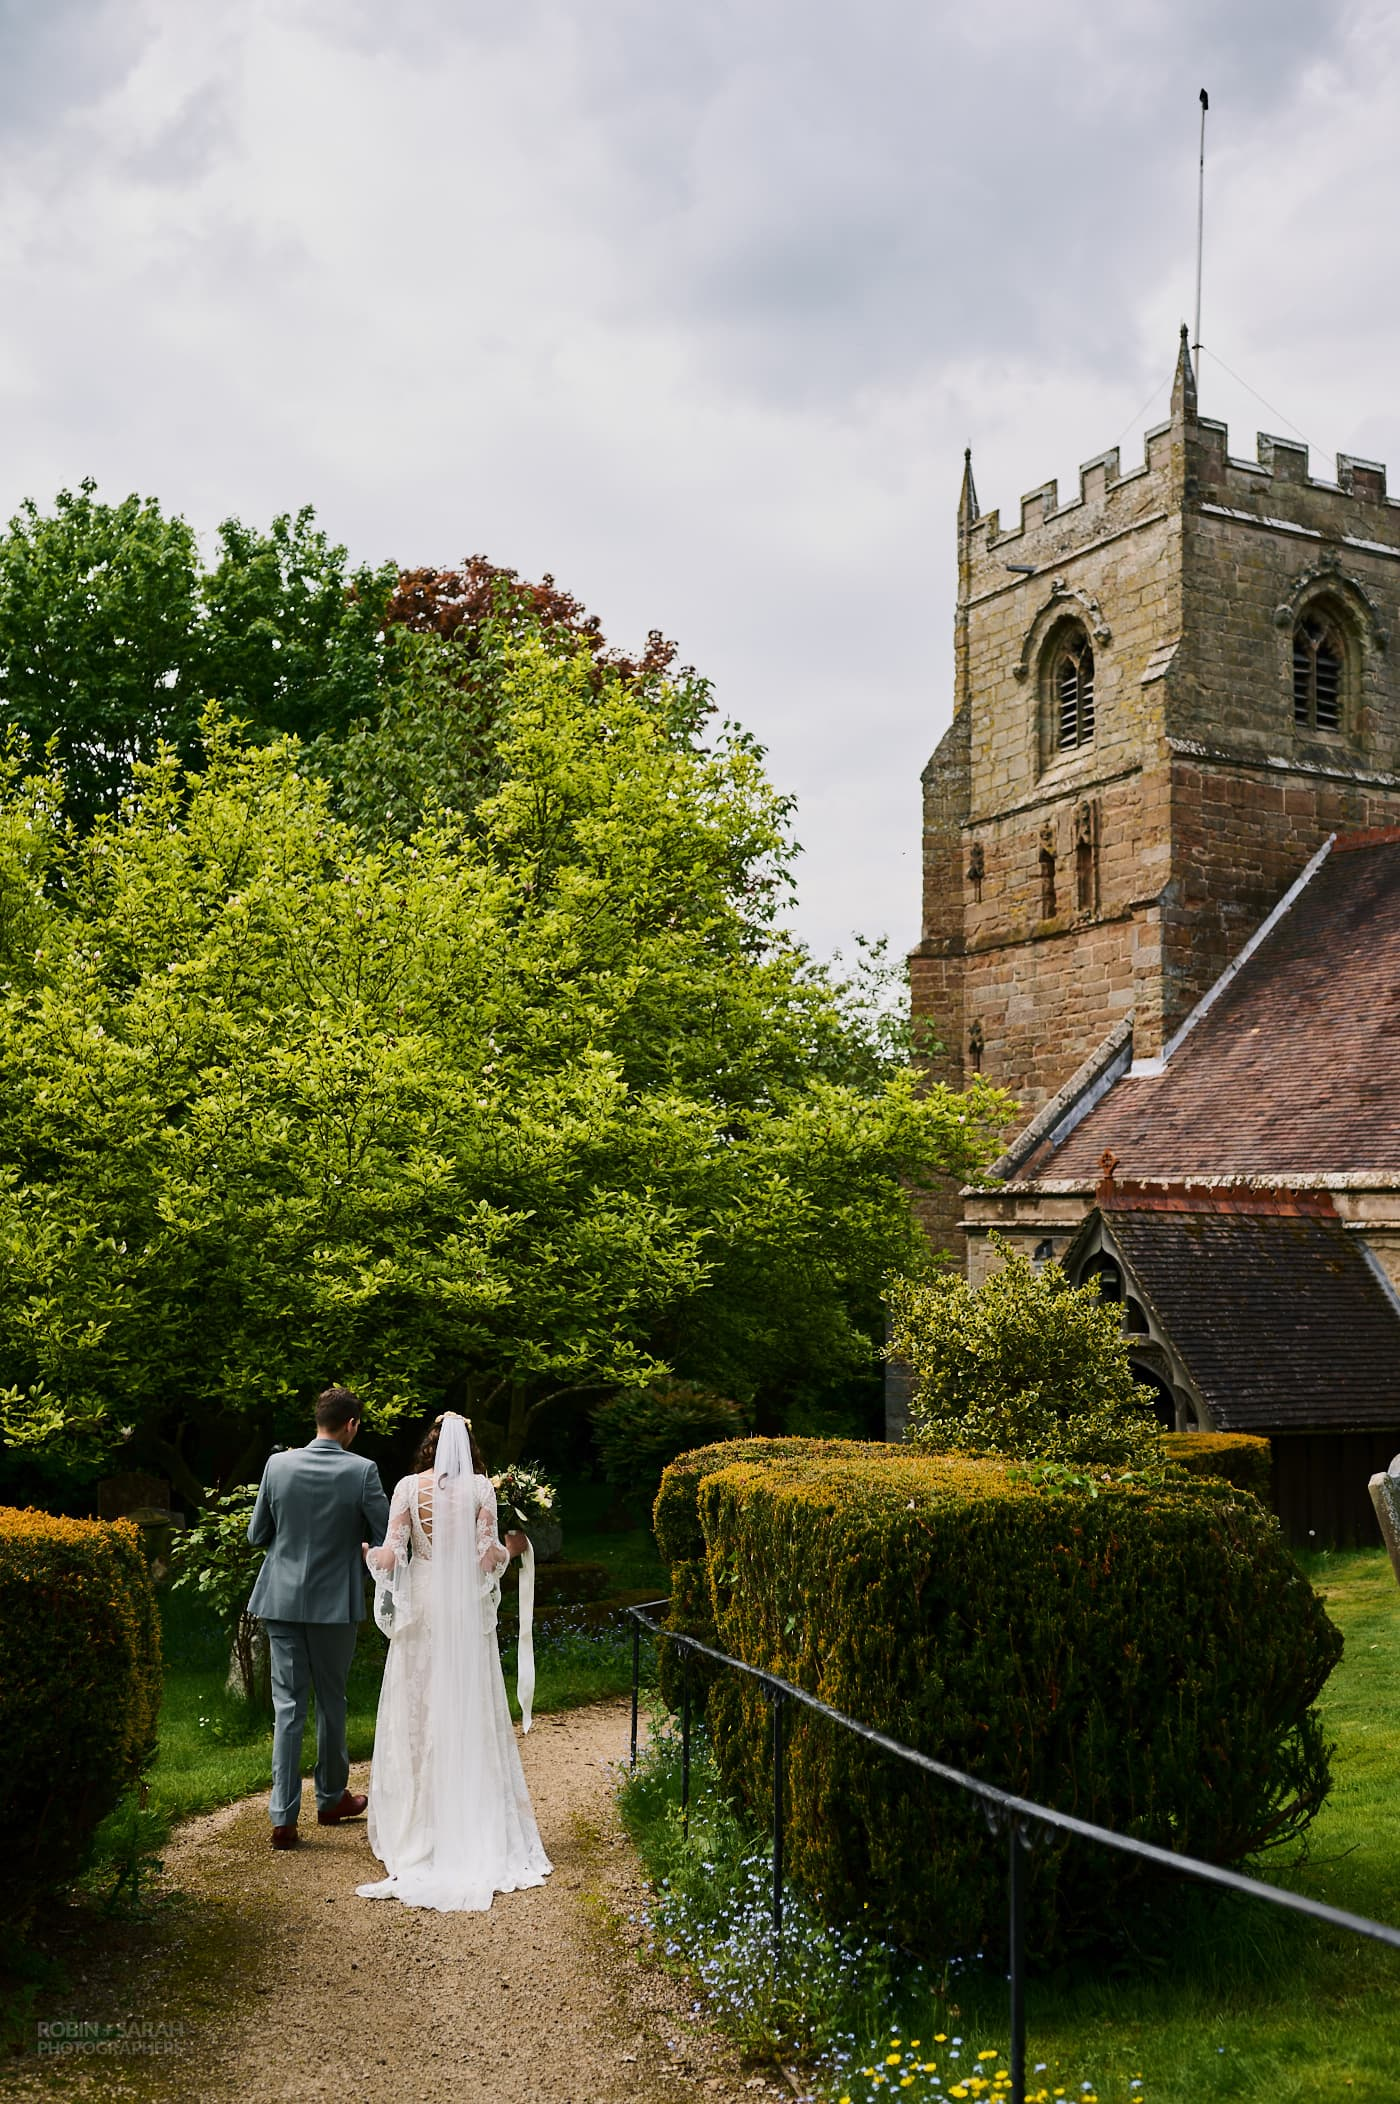 Bride and groom walk down path together at Beoley Church